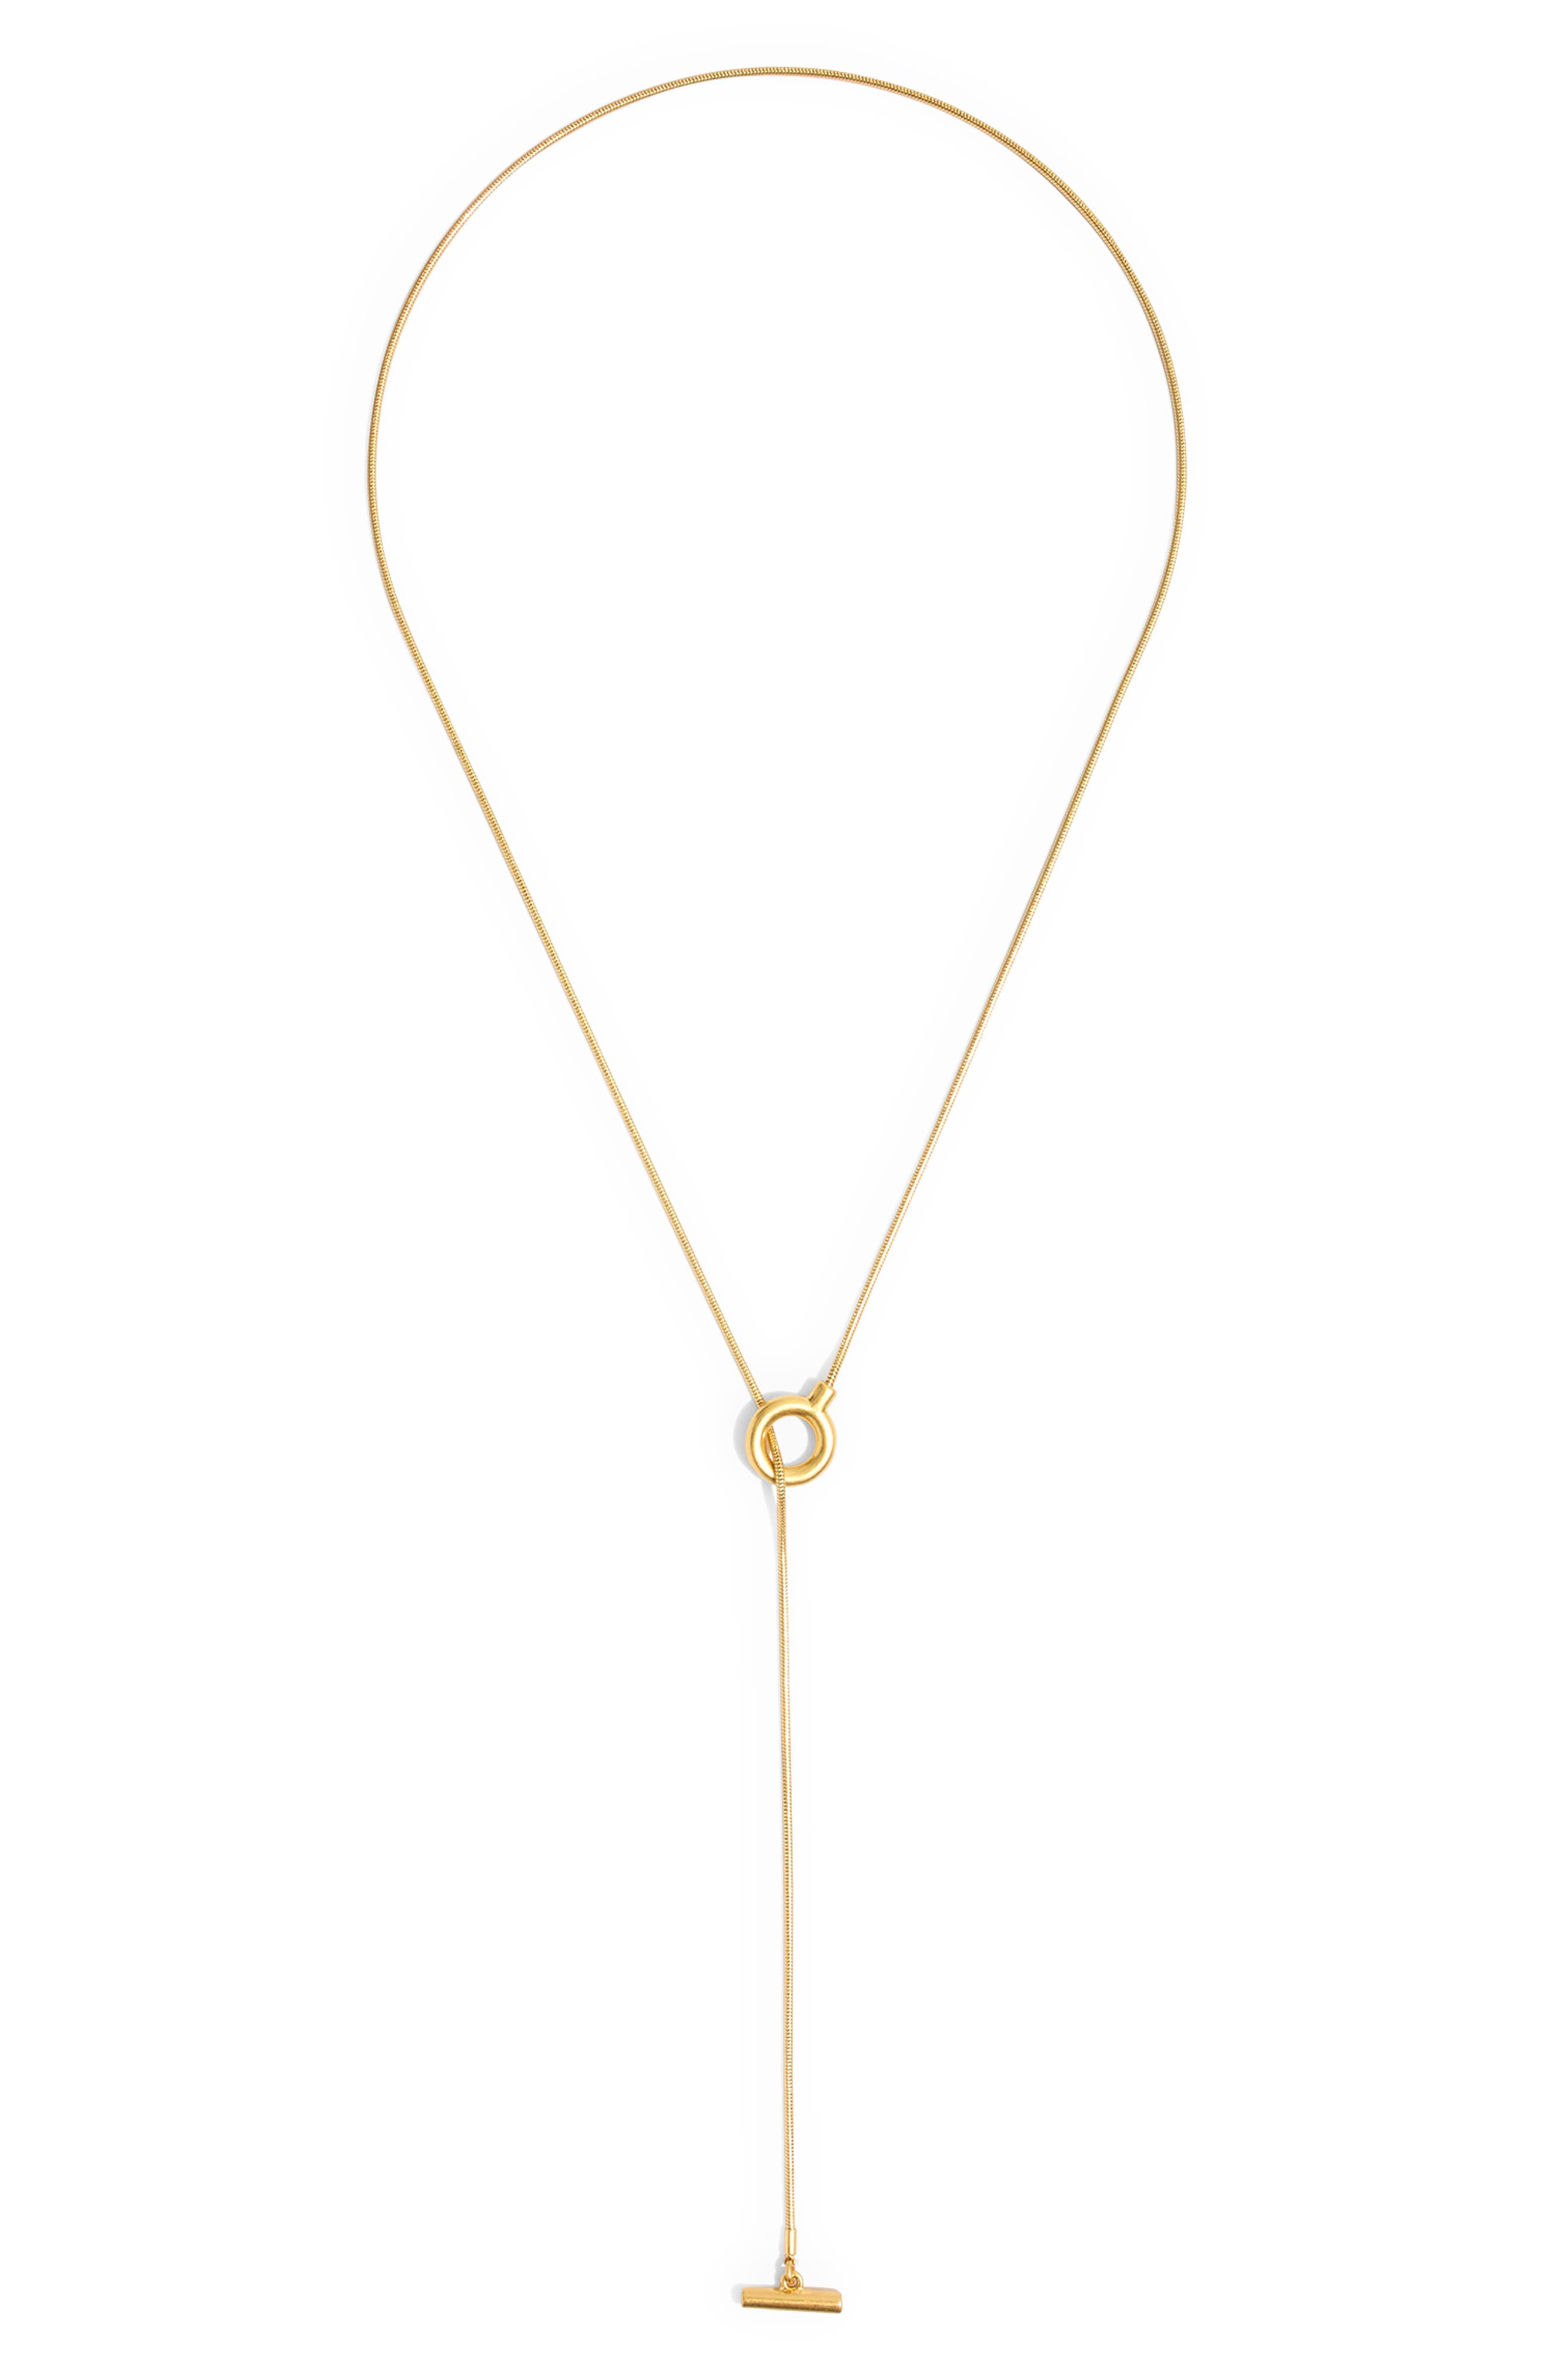 MADEWELL, Toggle Lariat Necklace, Alternate thumbnail 4, color, VINTAGE GOLD